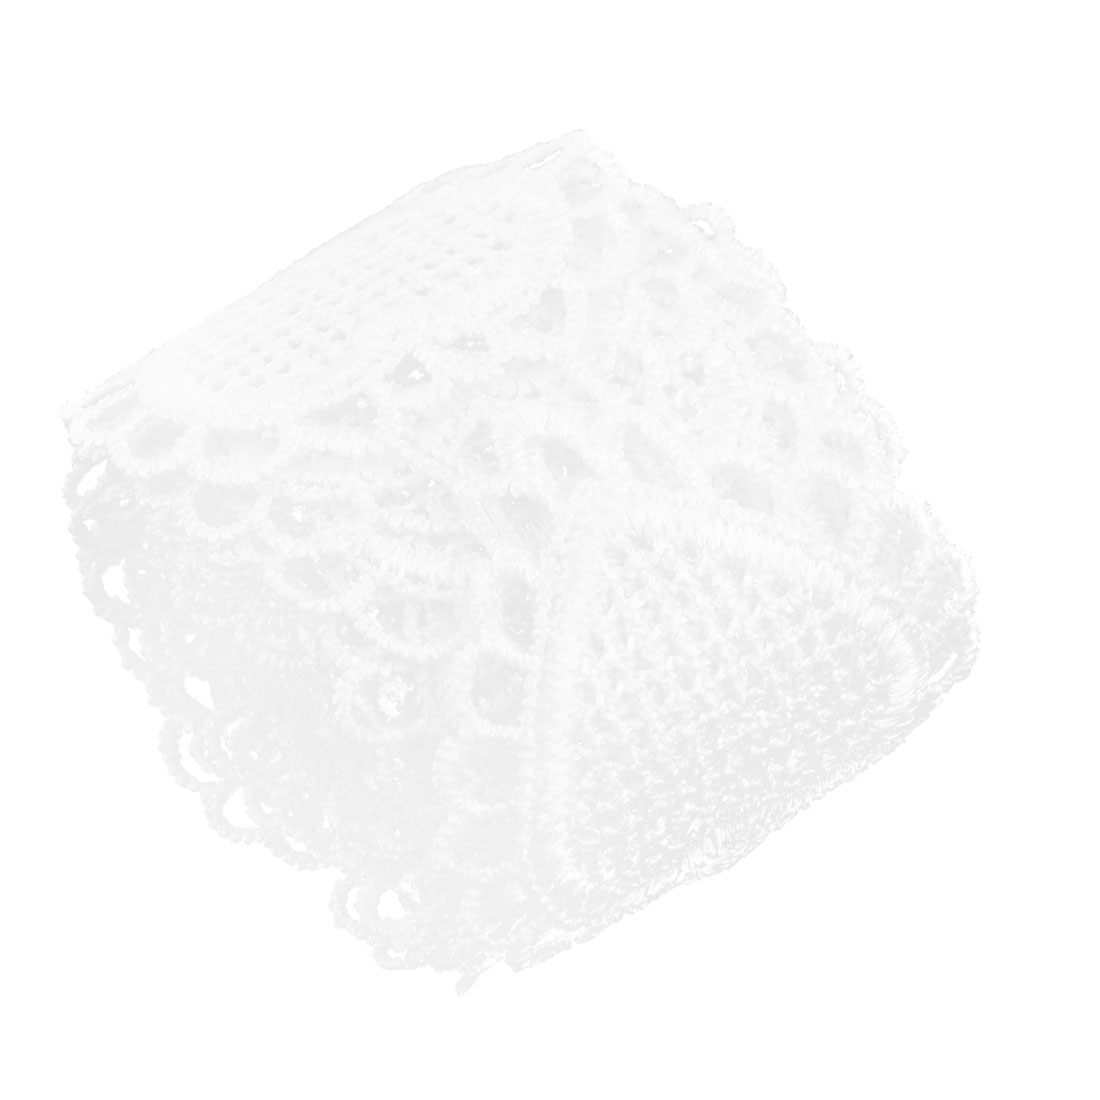 Household Polyester Heart Design Sewing Lace Trim Applique White 2 Inches Width